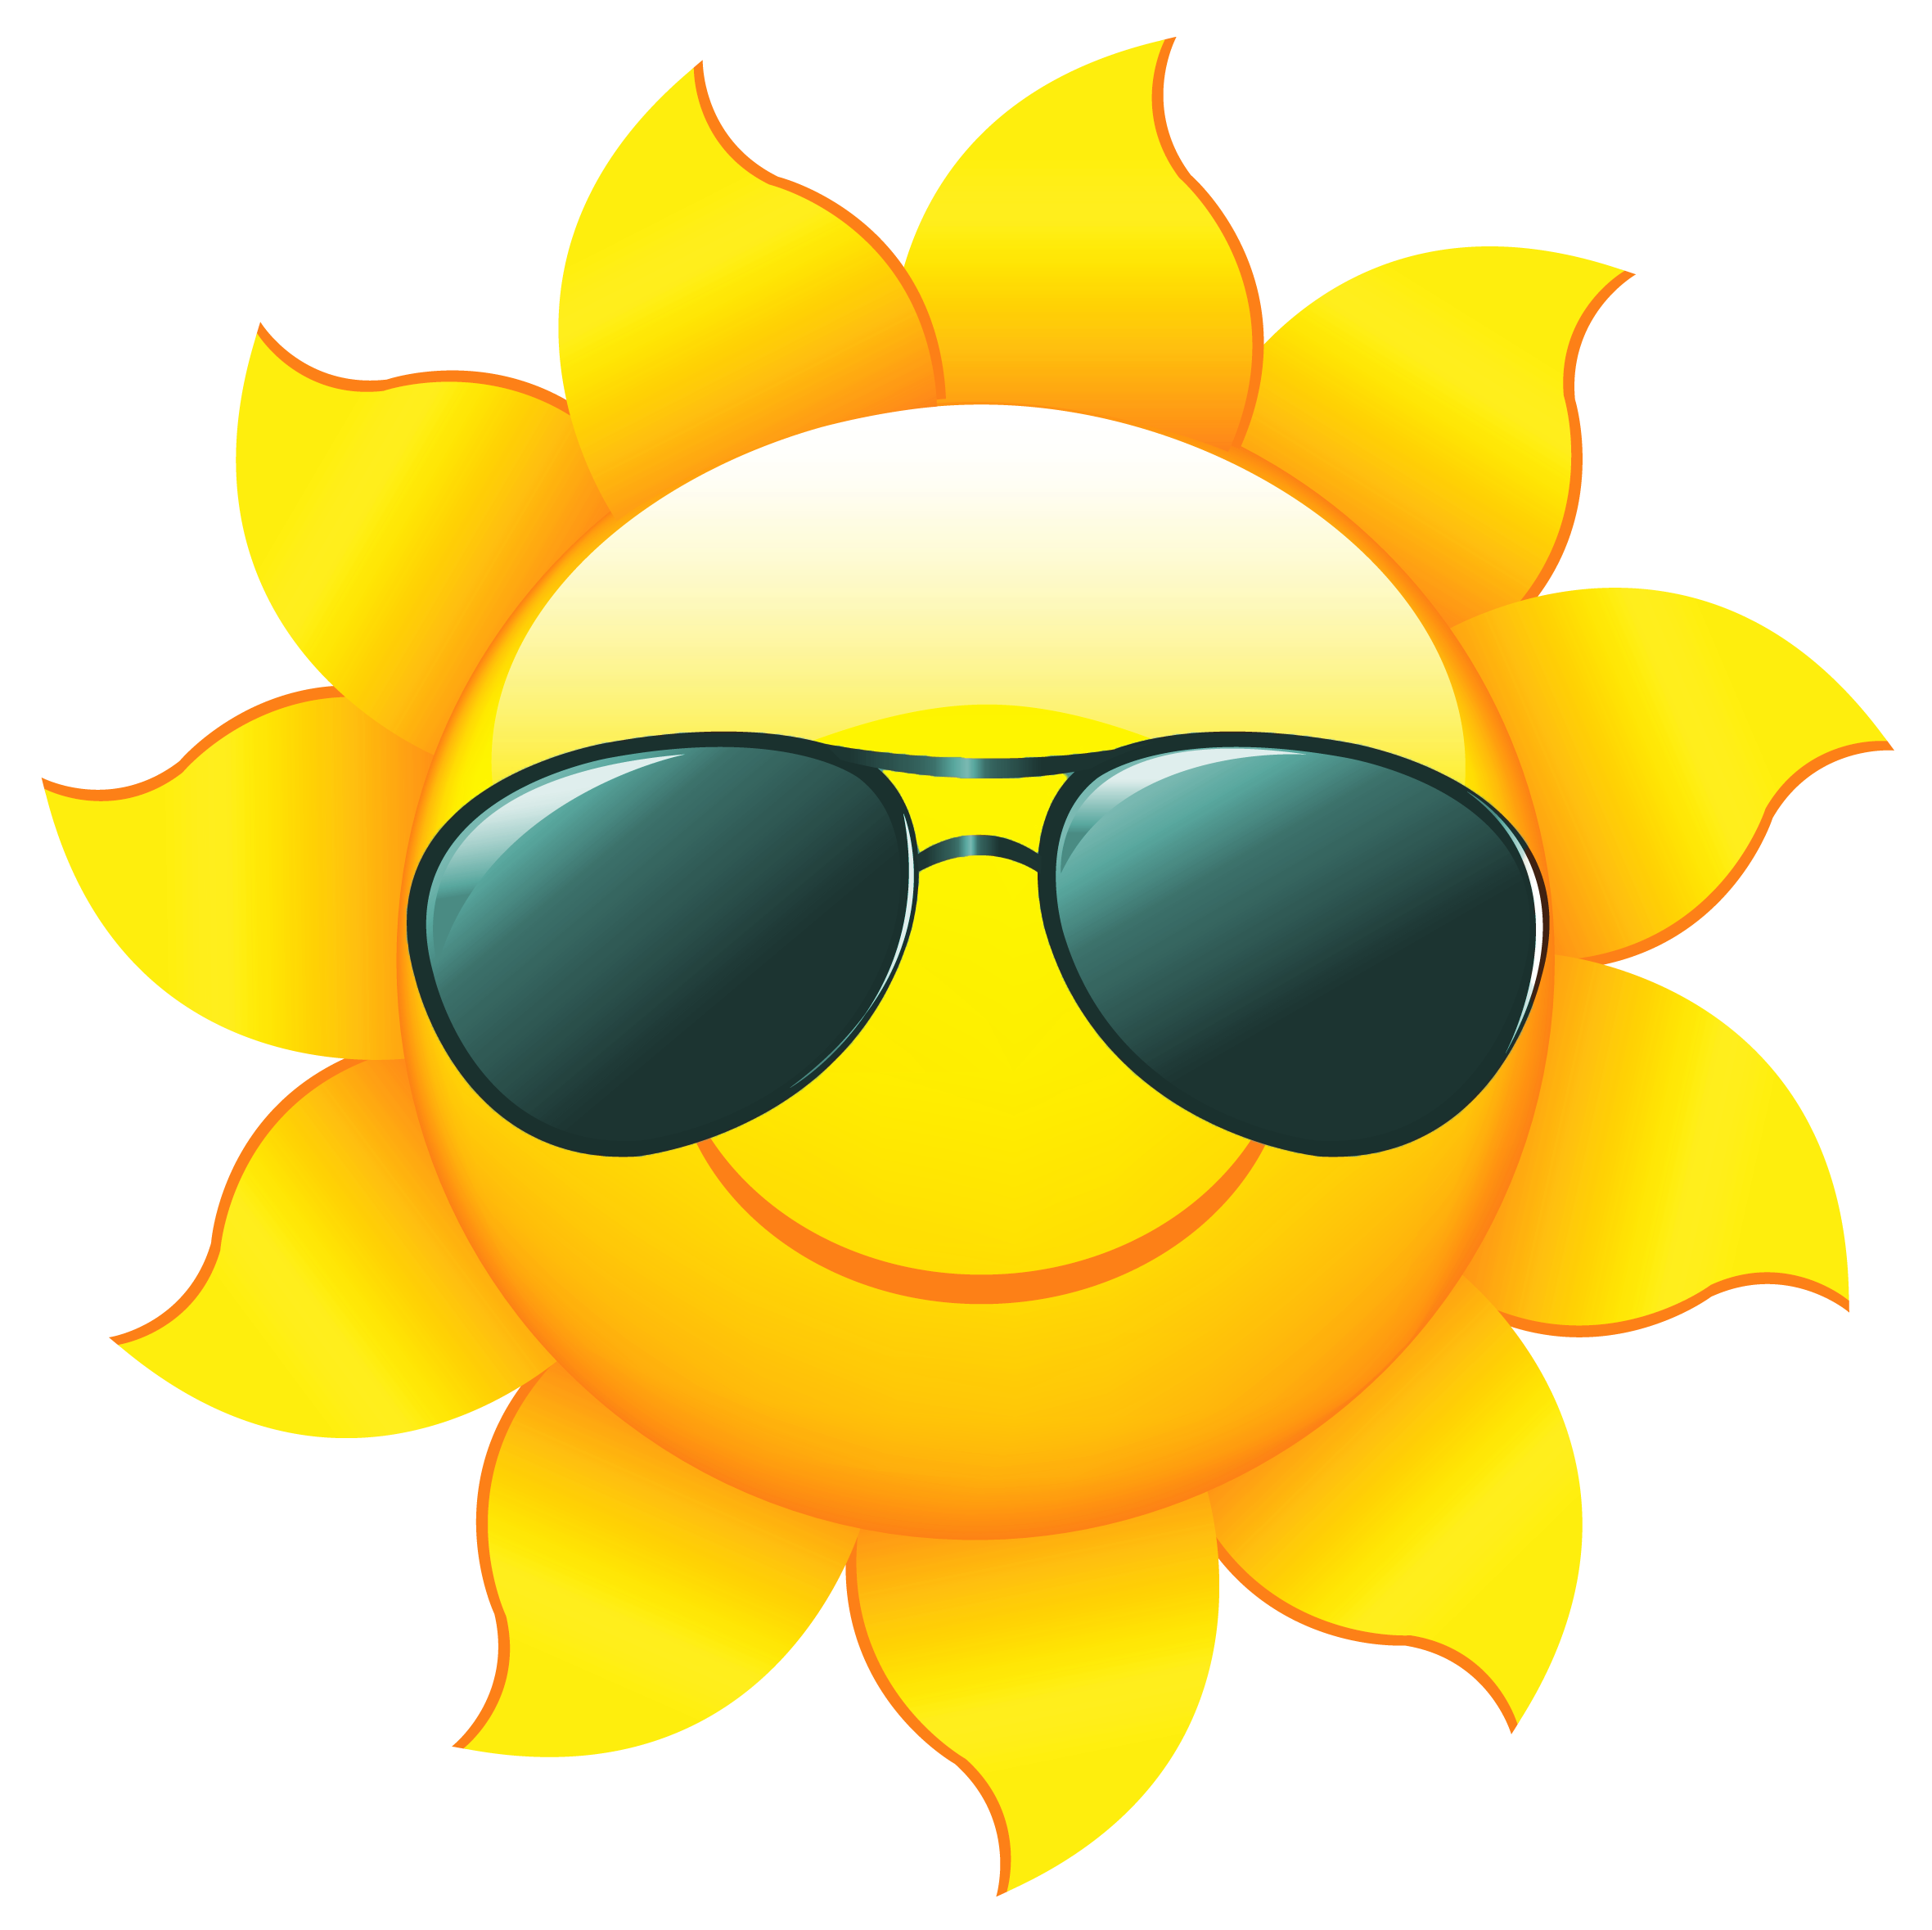 Rising sun clipart image freeuse Community Events Calendar 6.30-7.6.2018 - Town of Bedford image freeuse